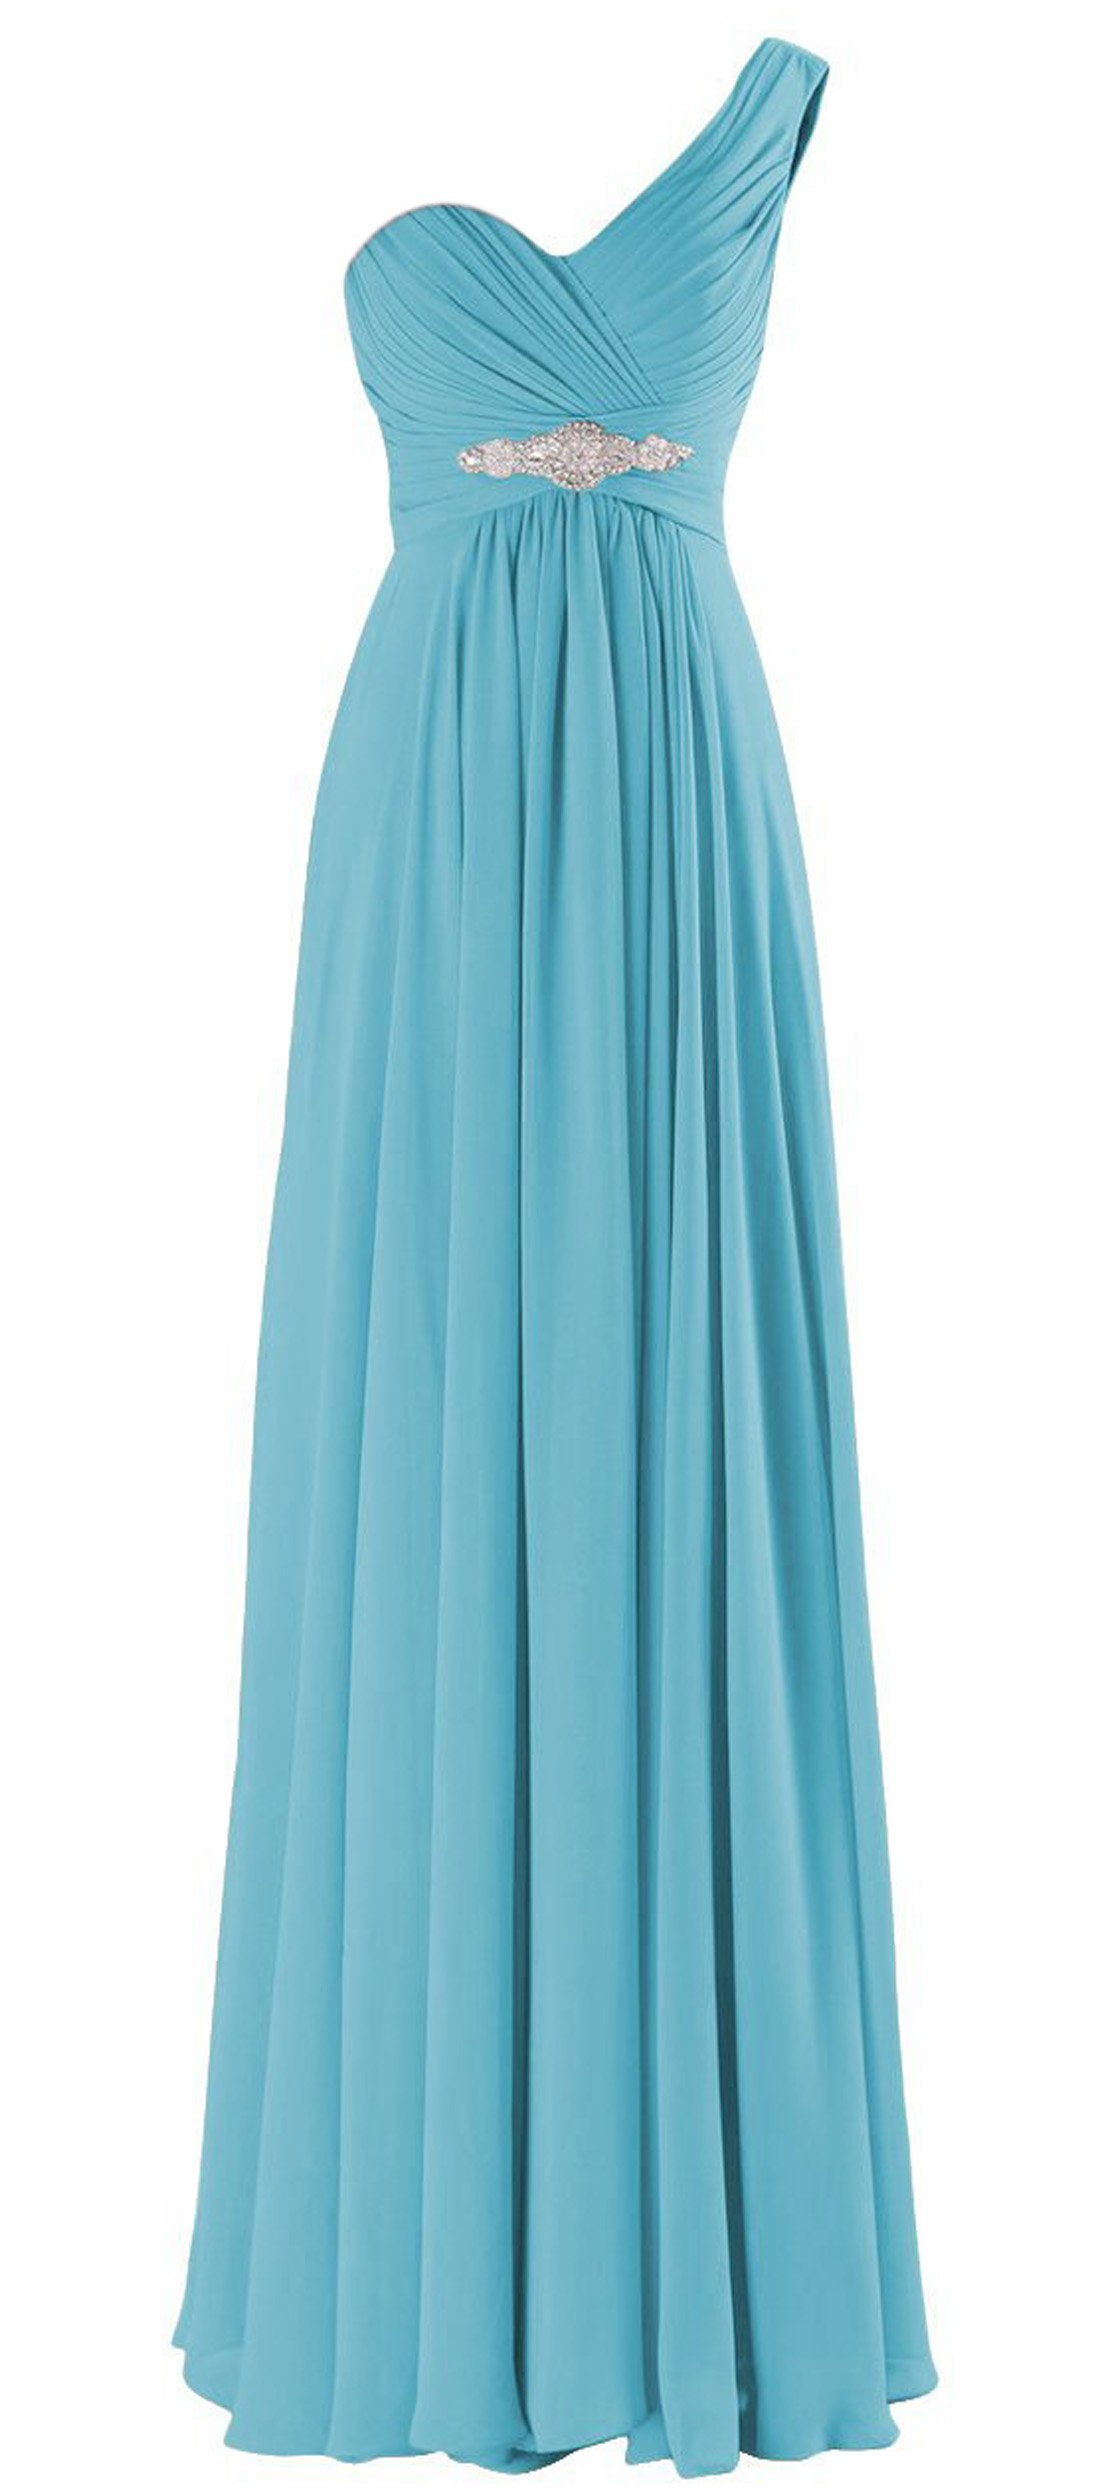 ThaliaDress Women One Shoulder Formal Evening Bridesmaid Dress Prom Gown T198LF Blue US18W